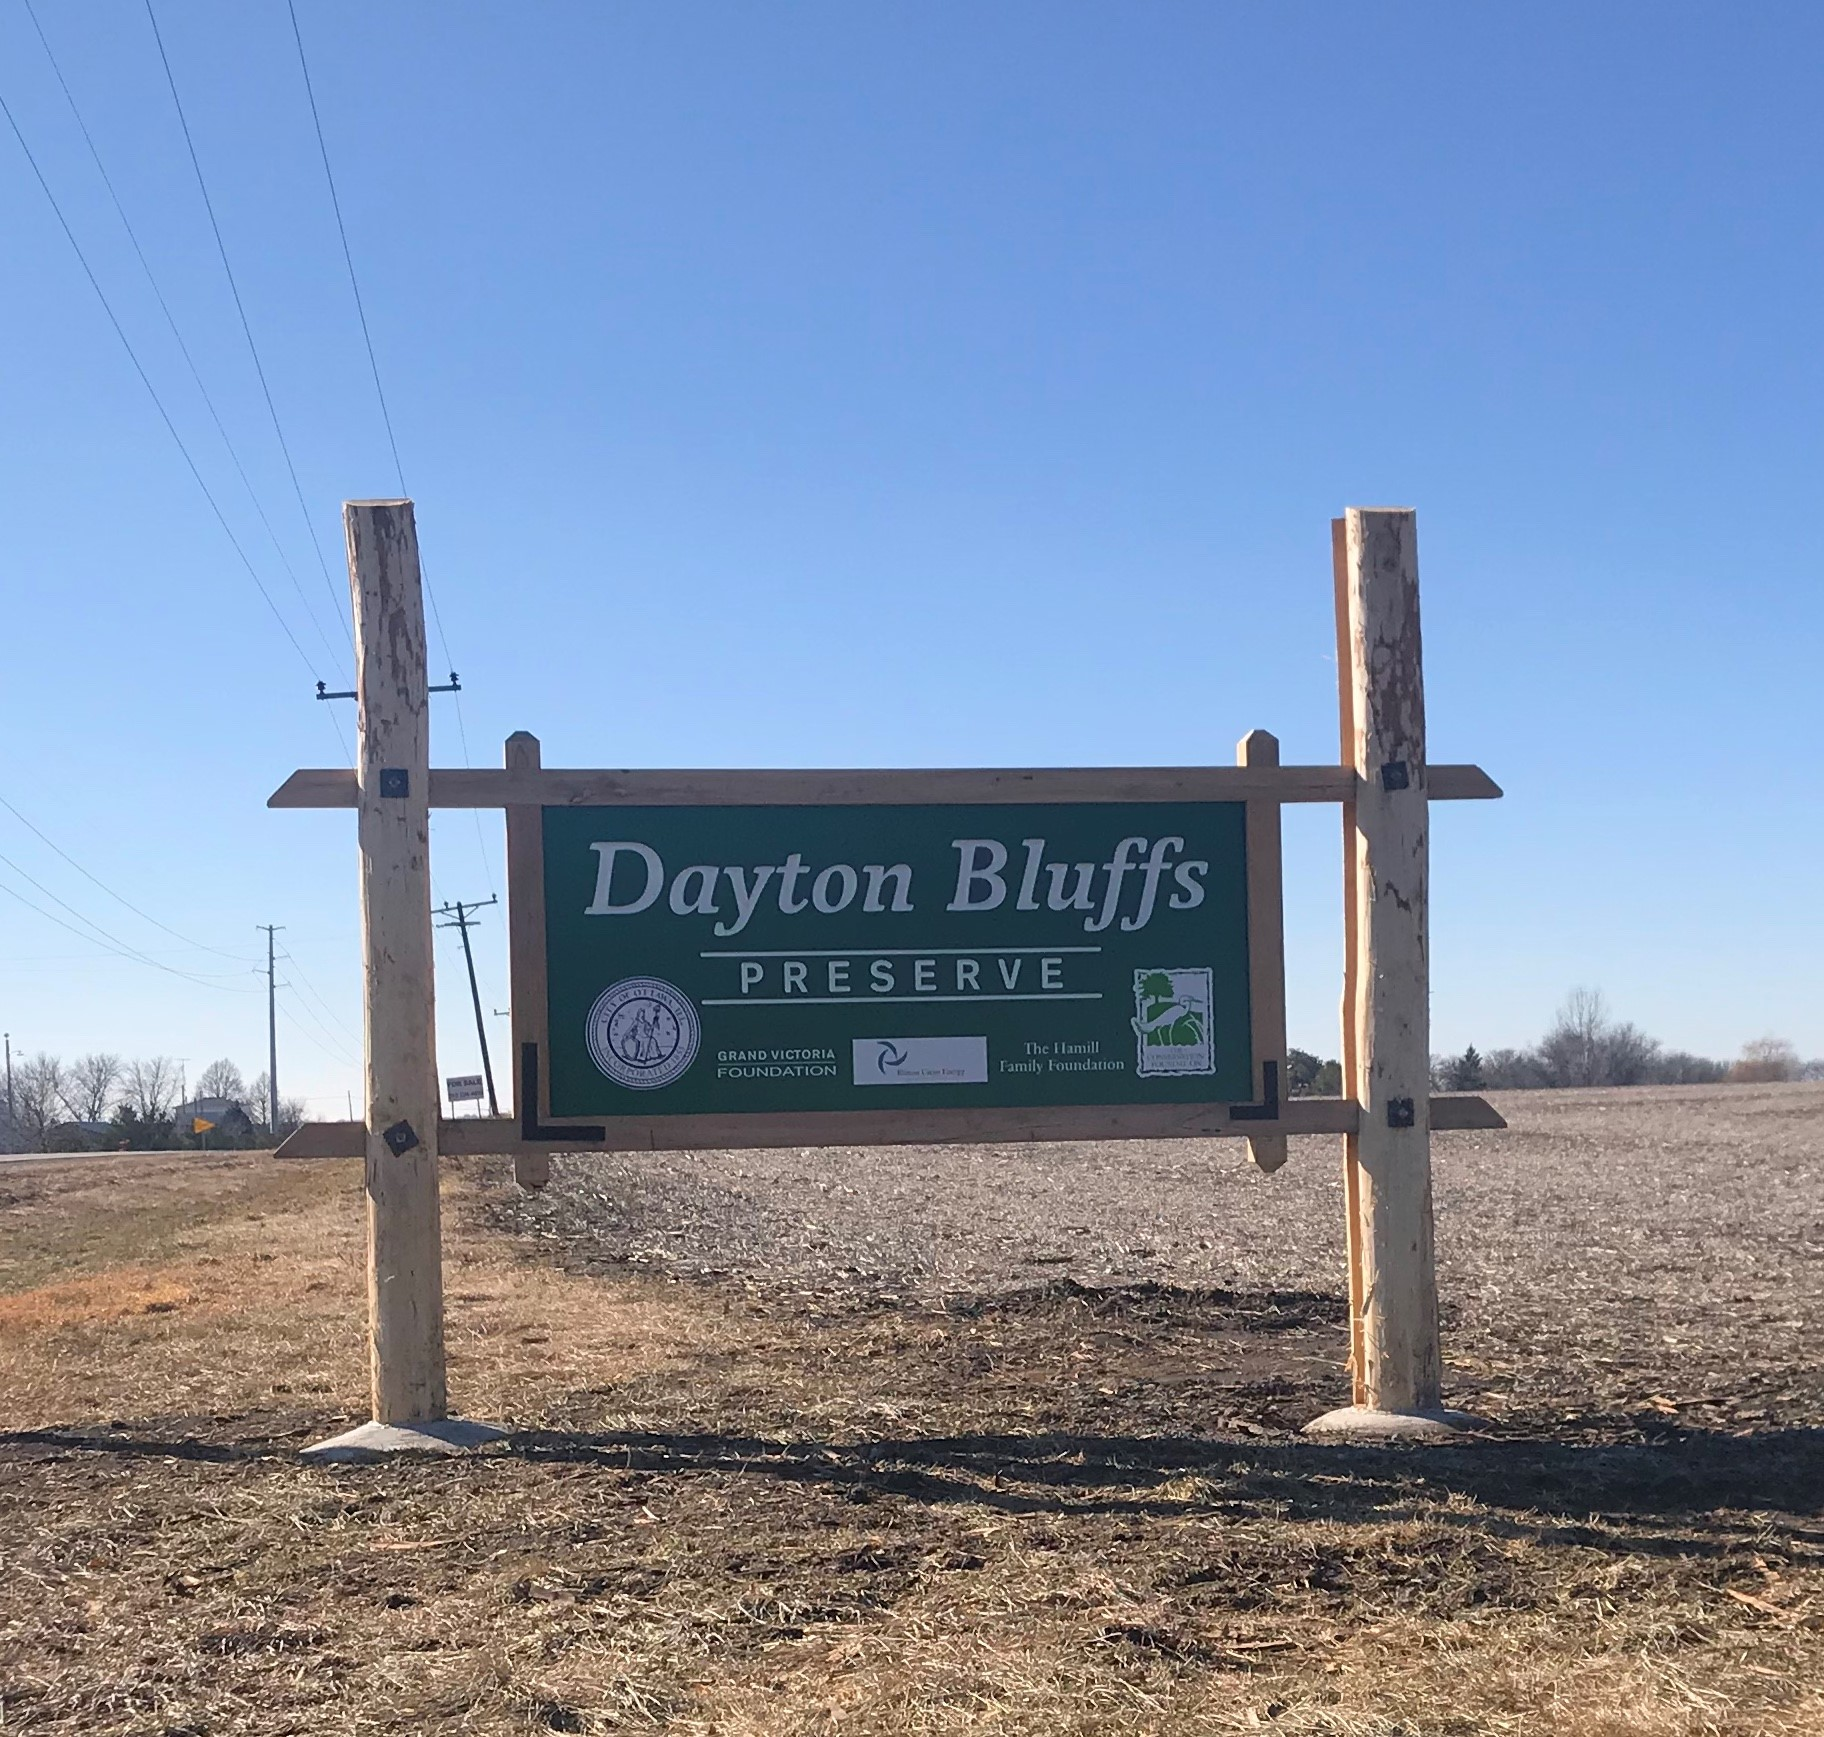 Entrance to Dayton Bluffs Preserve off Hwy 71 in Ottawa